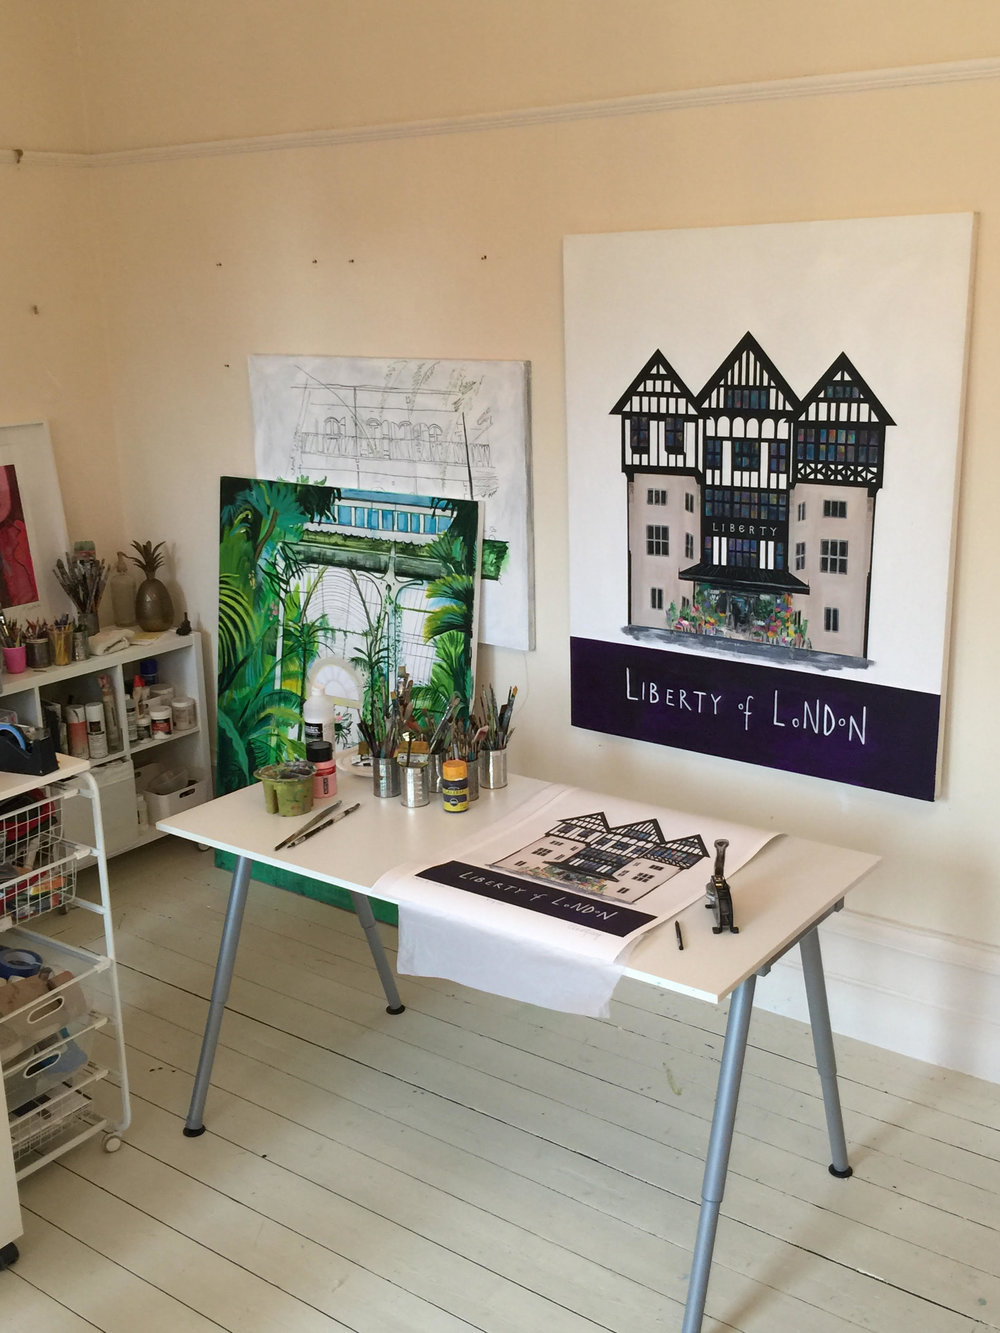 Haxby _ Liberty Painting Studio shot 3.jpg